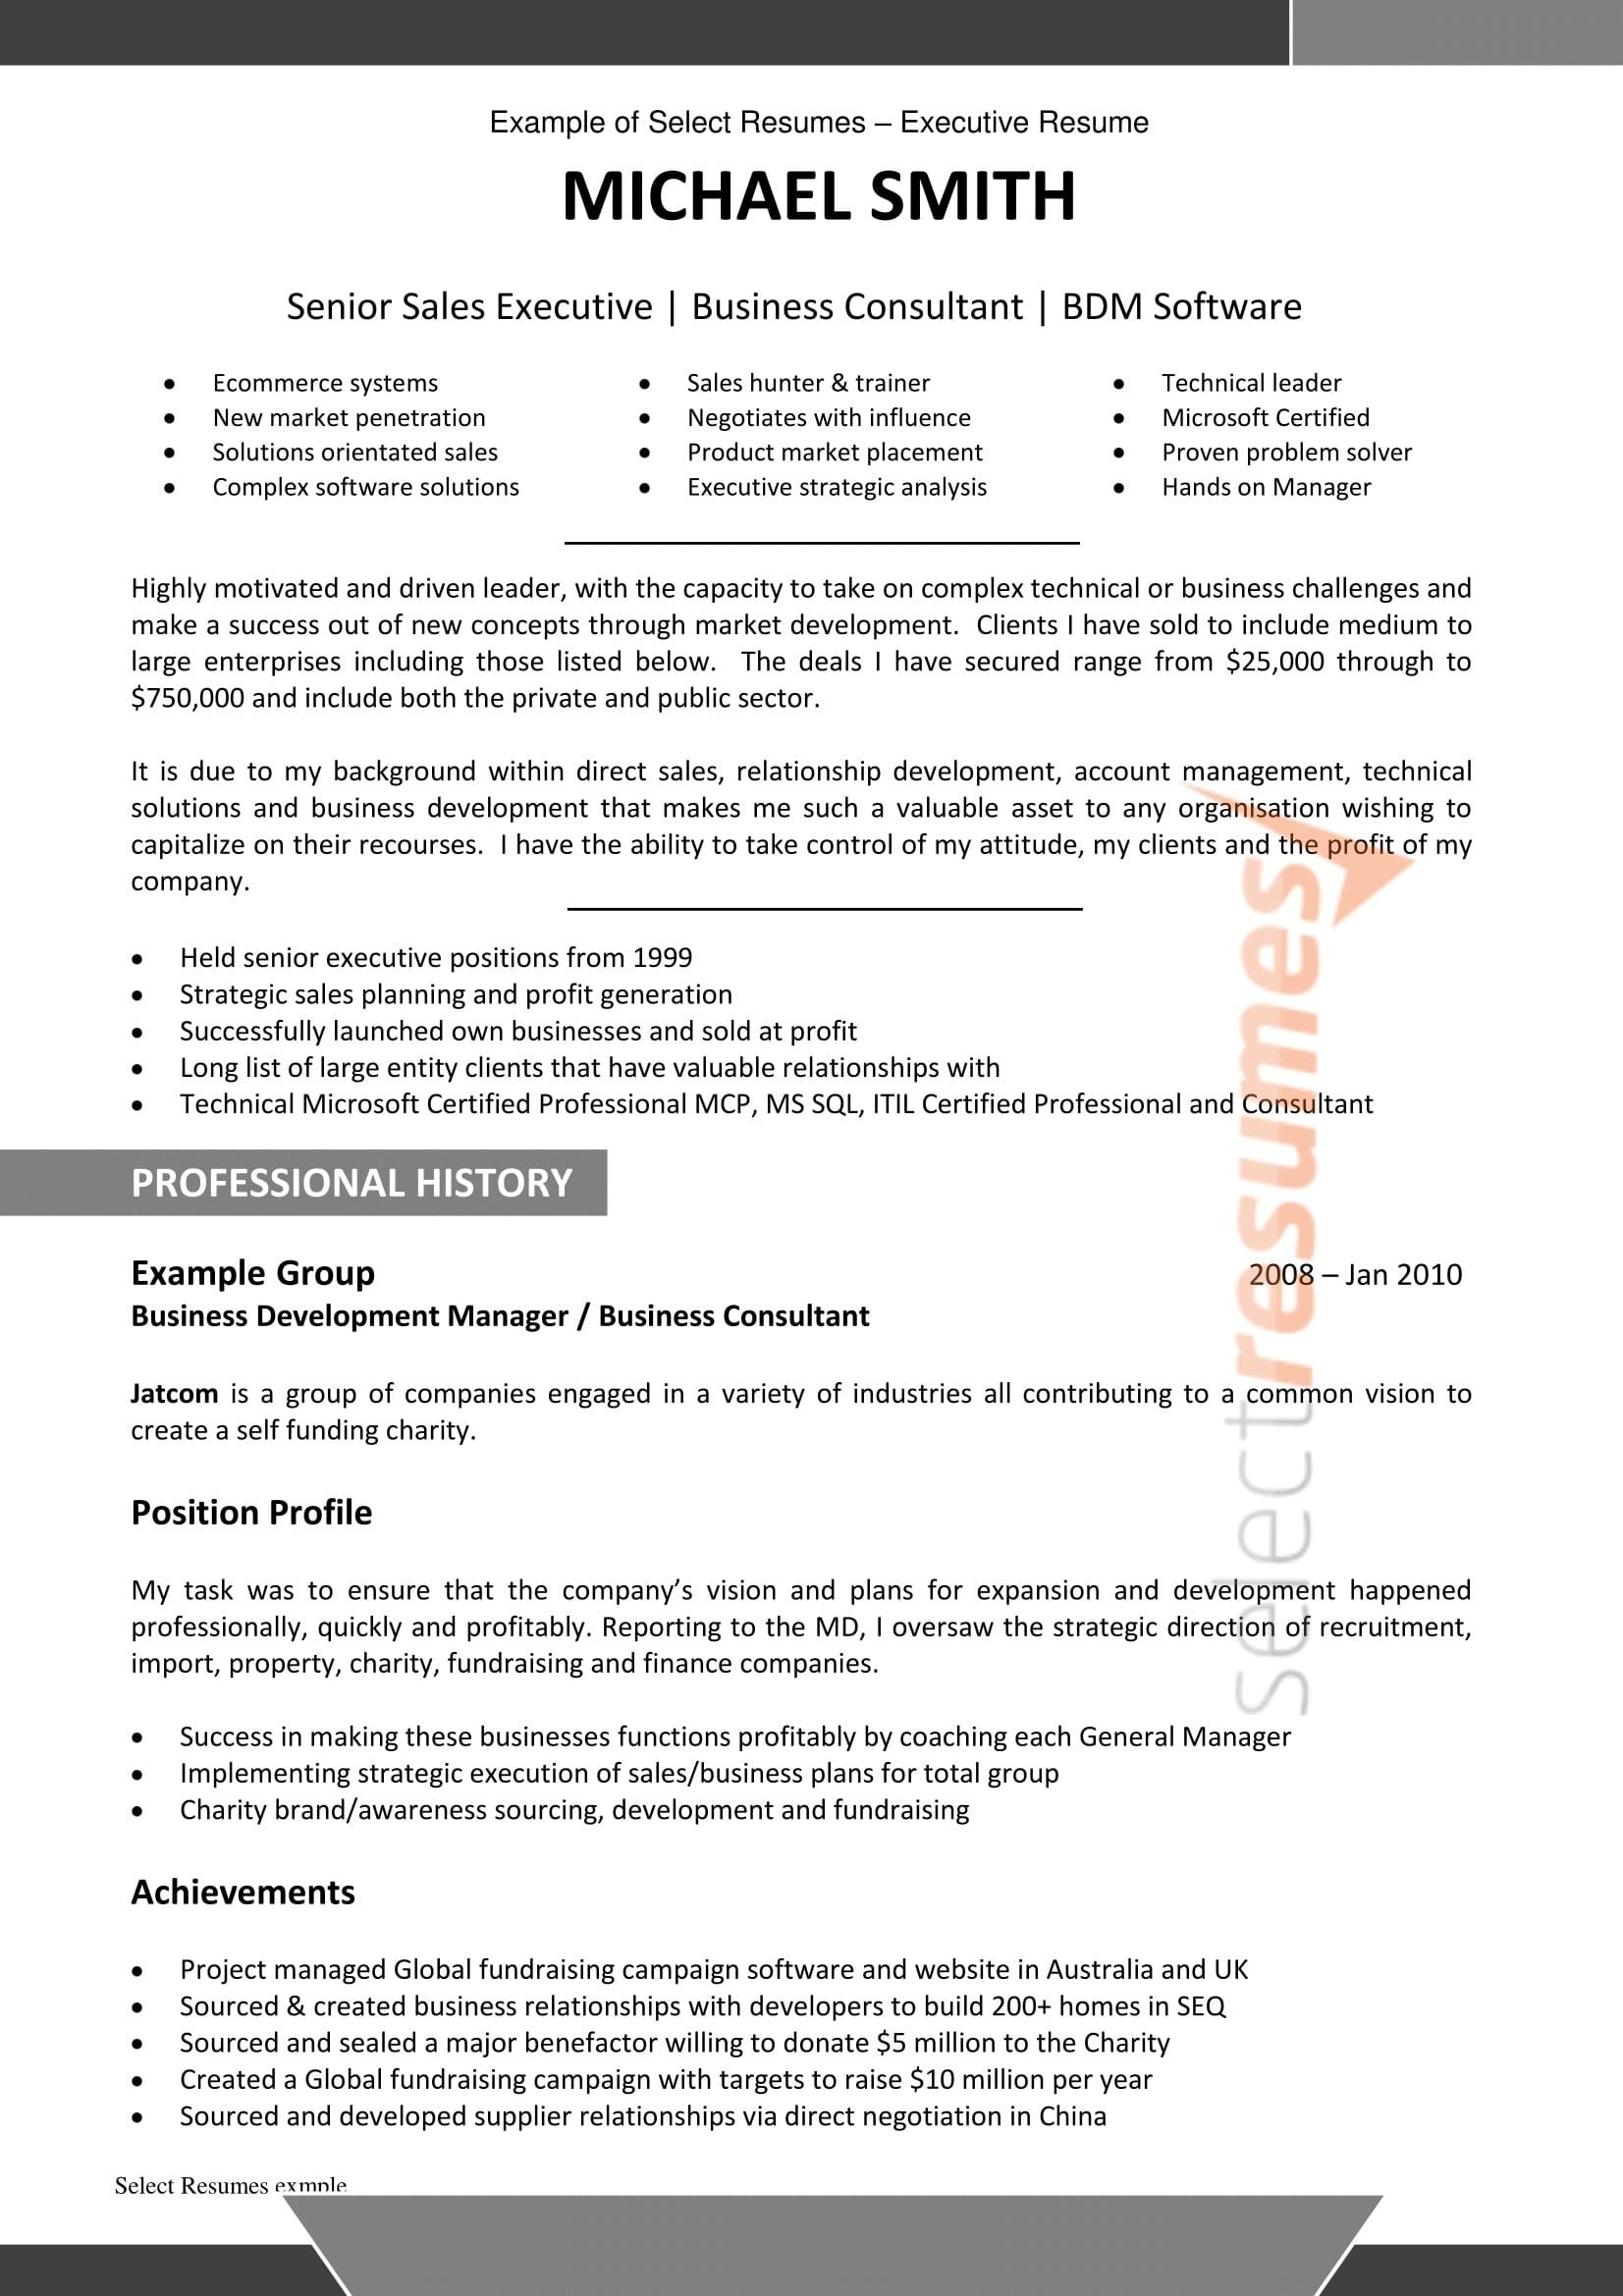 professional resume services by writers with images writing writer writter skills for an Resume Professional Resume Writter